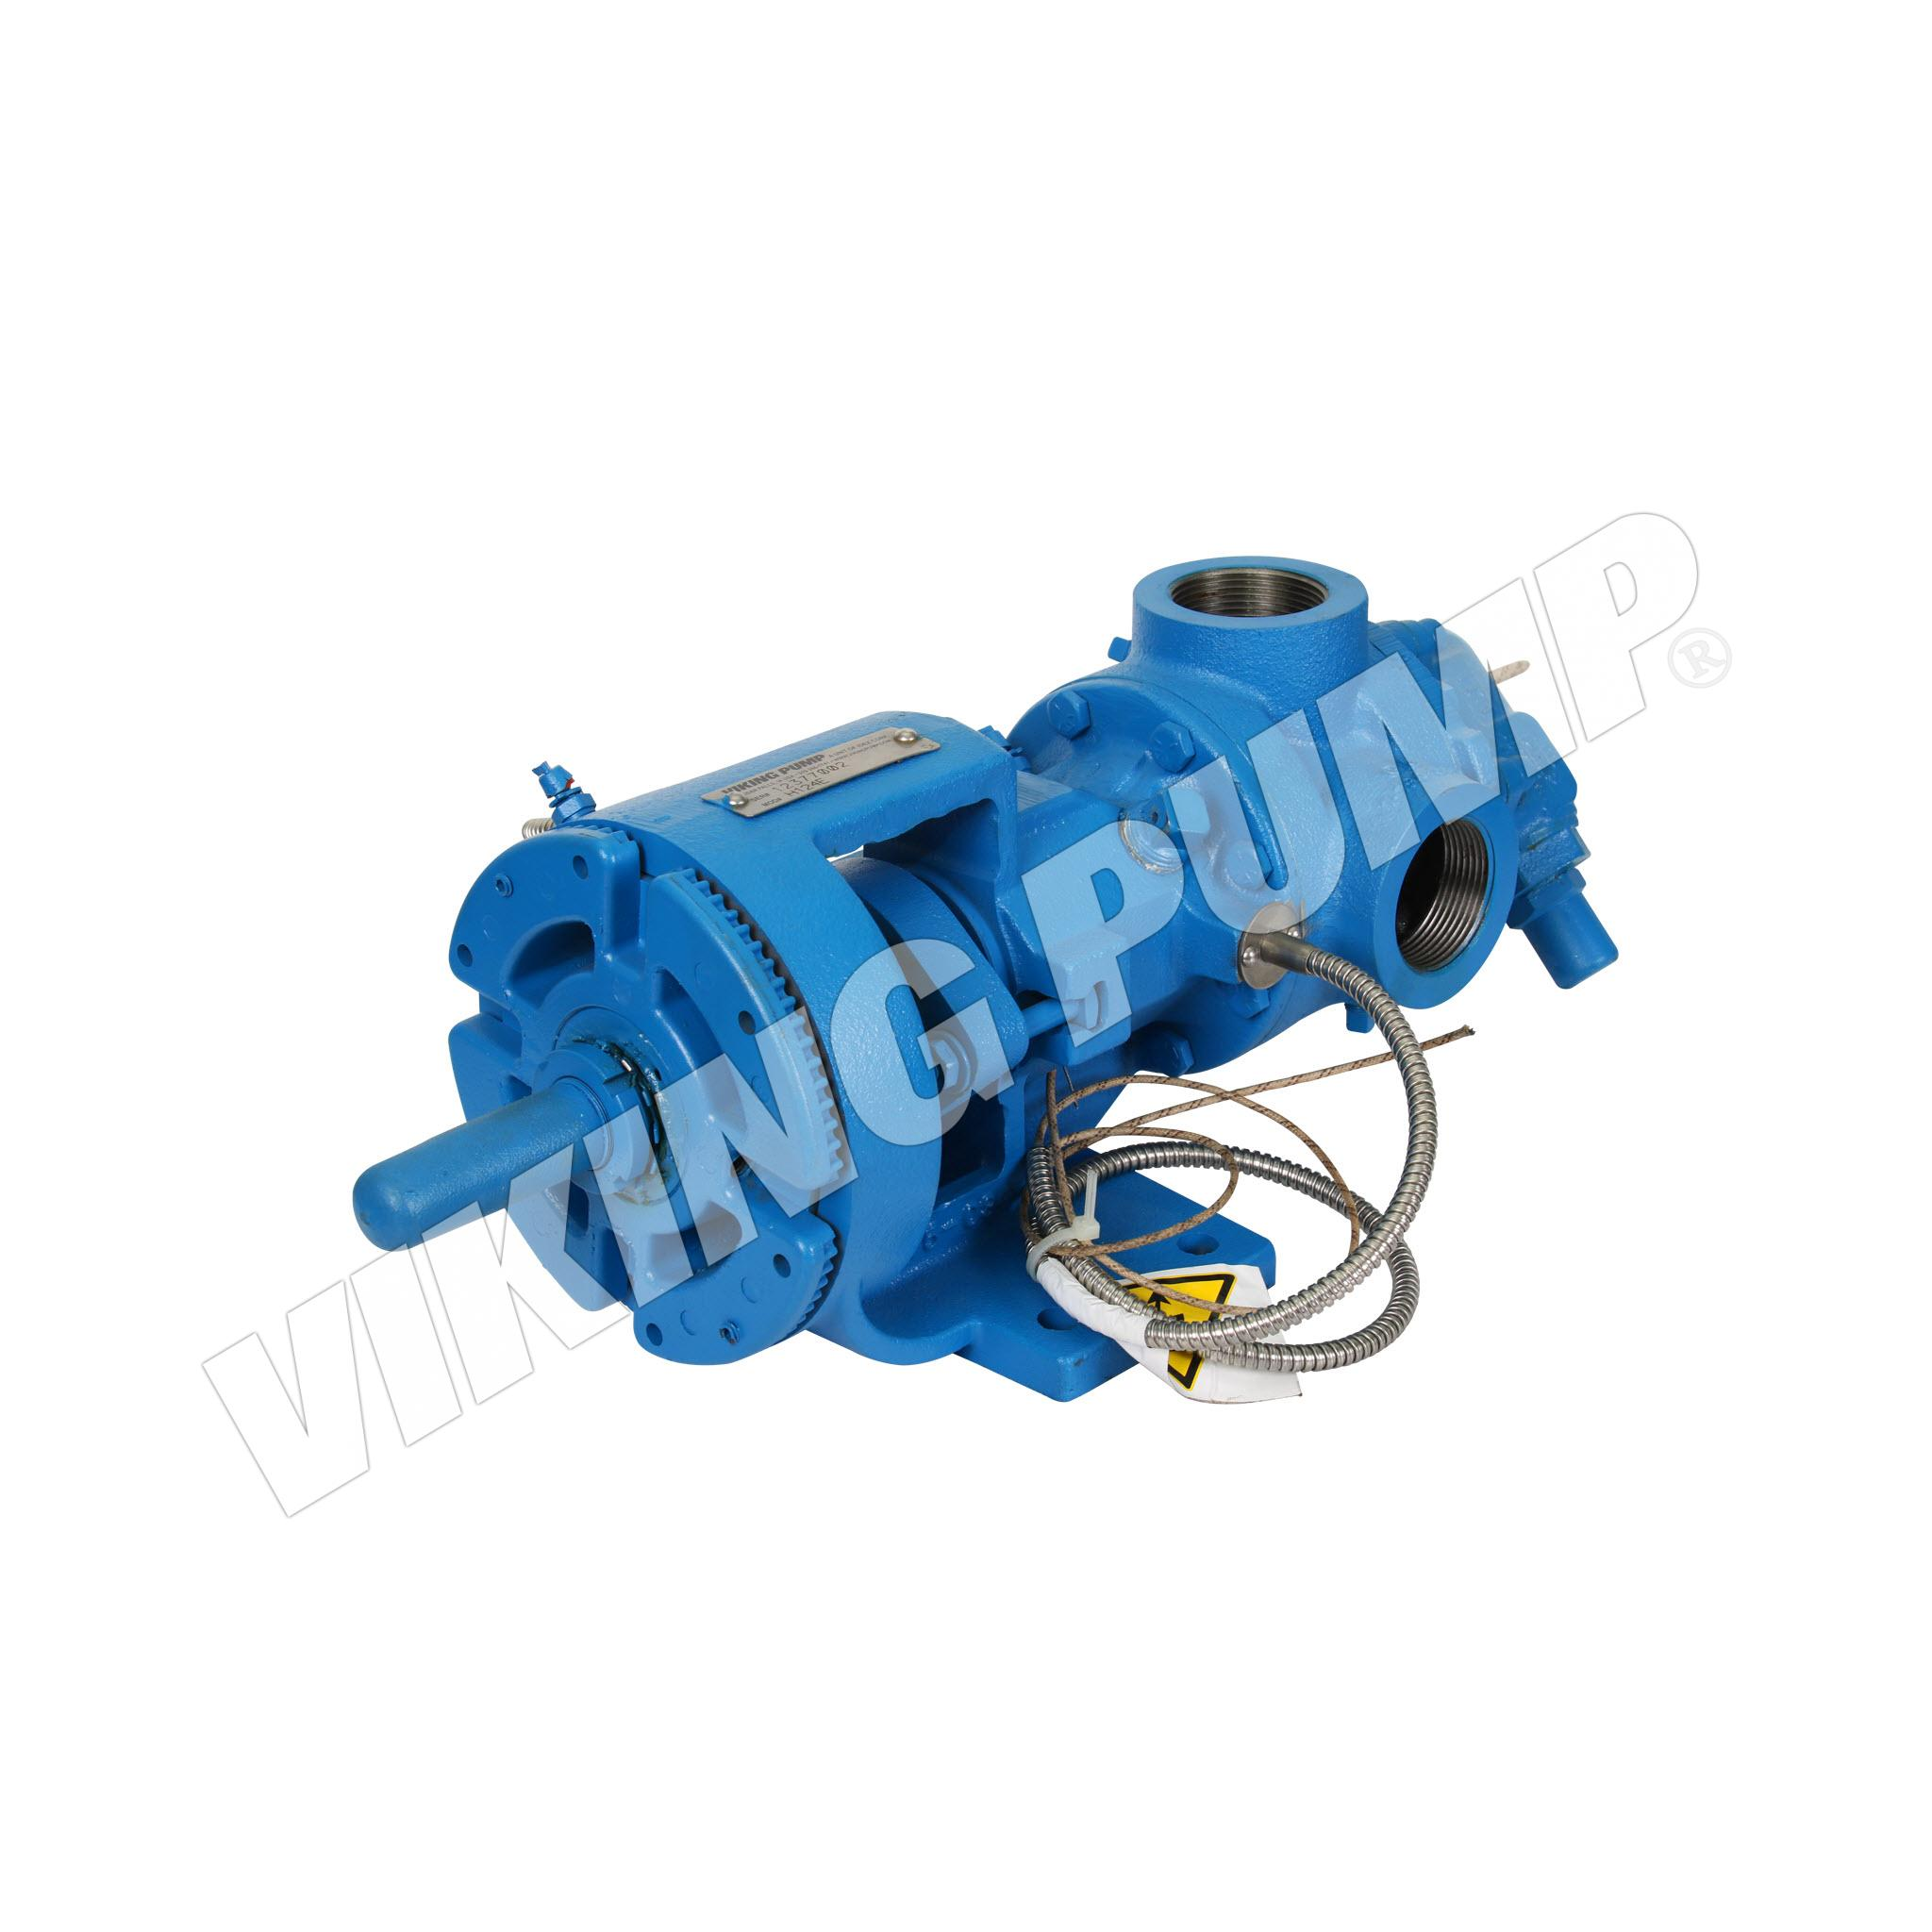 Model H124E, Foot Mounted, Electrically Heated, Packed Gland, Relief Valve Pump